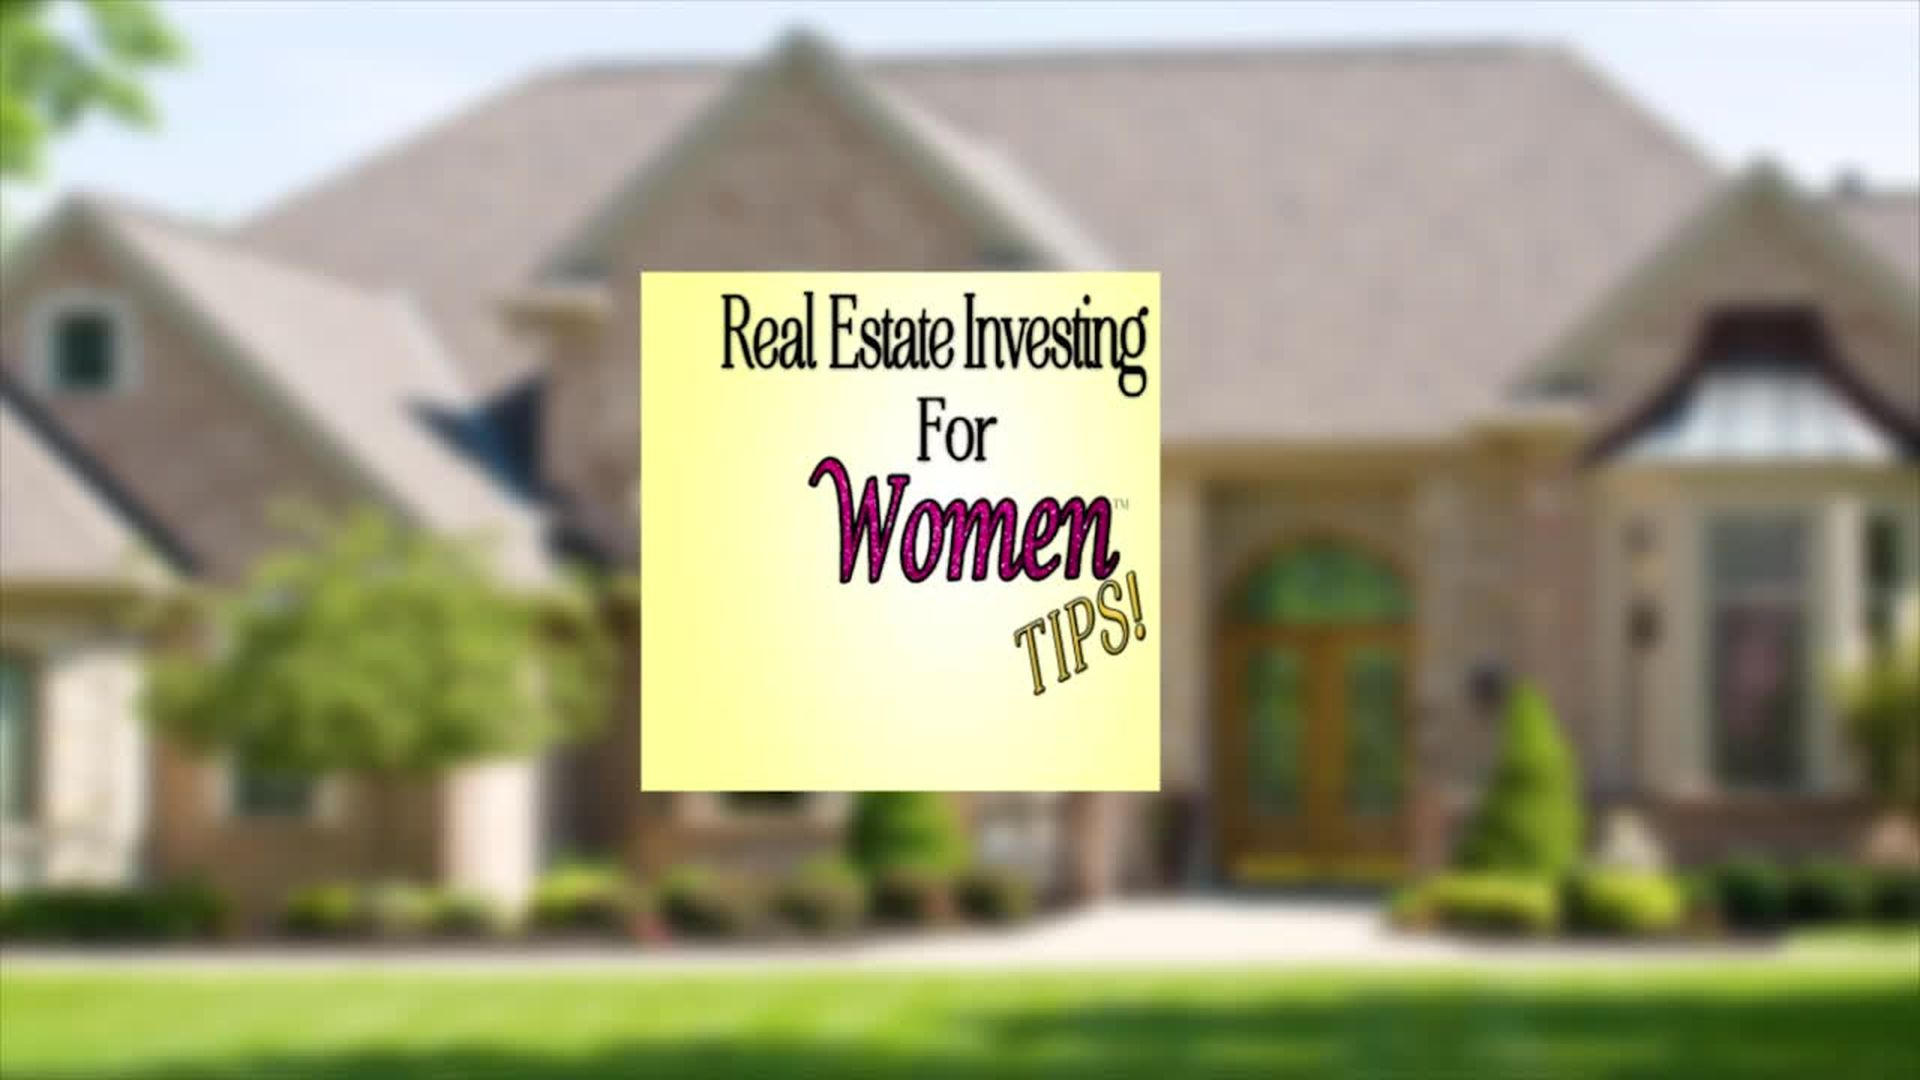 Building Financial Security with Amanda Neely - REAL ESTATE INVESTING FOR WOMEN TIPS